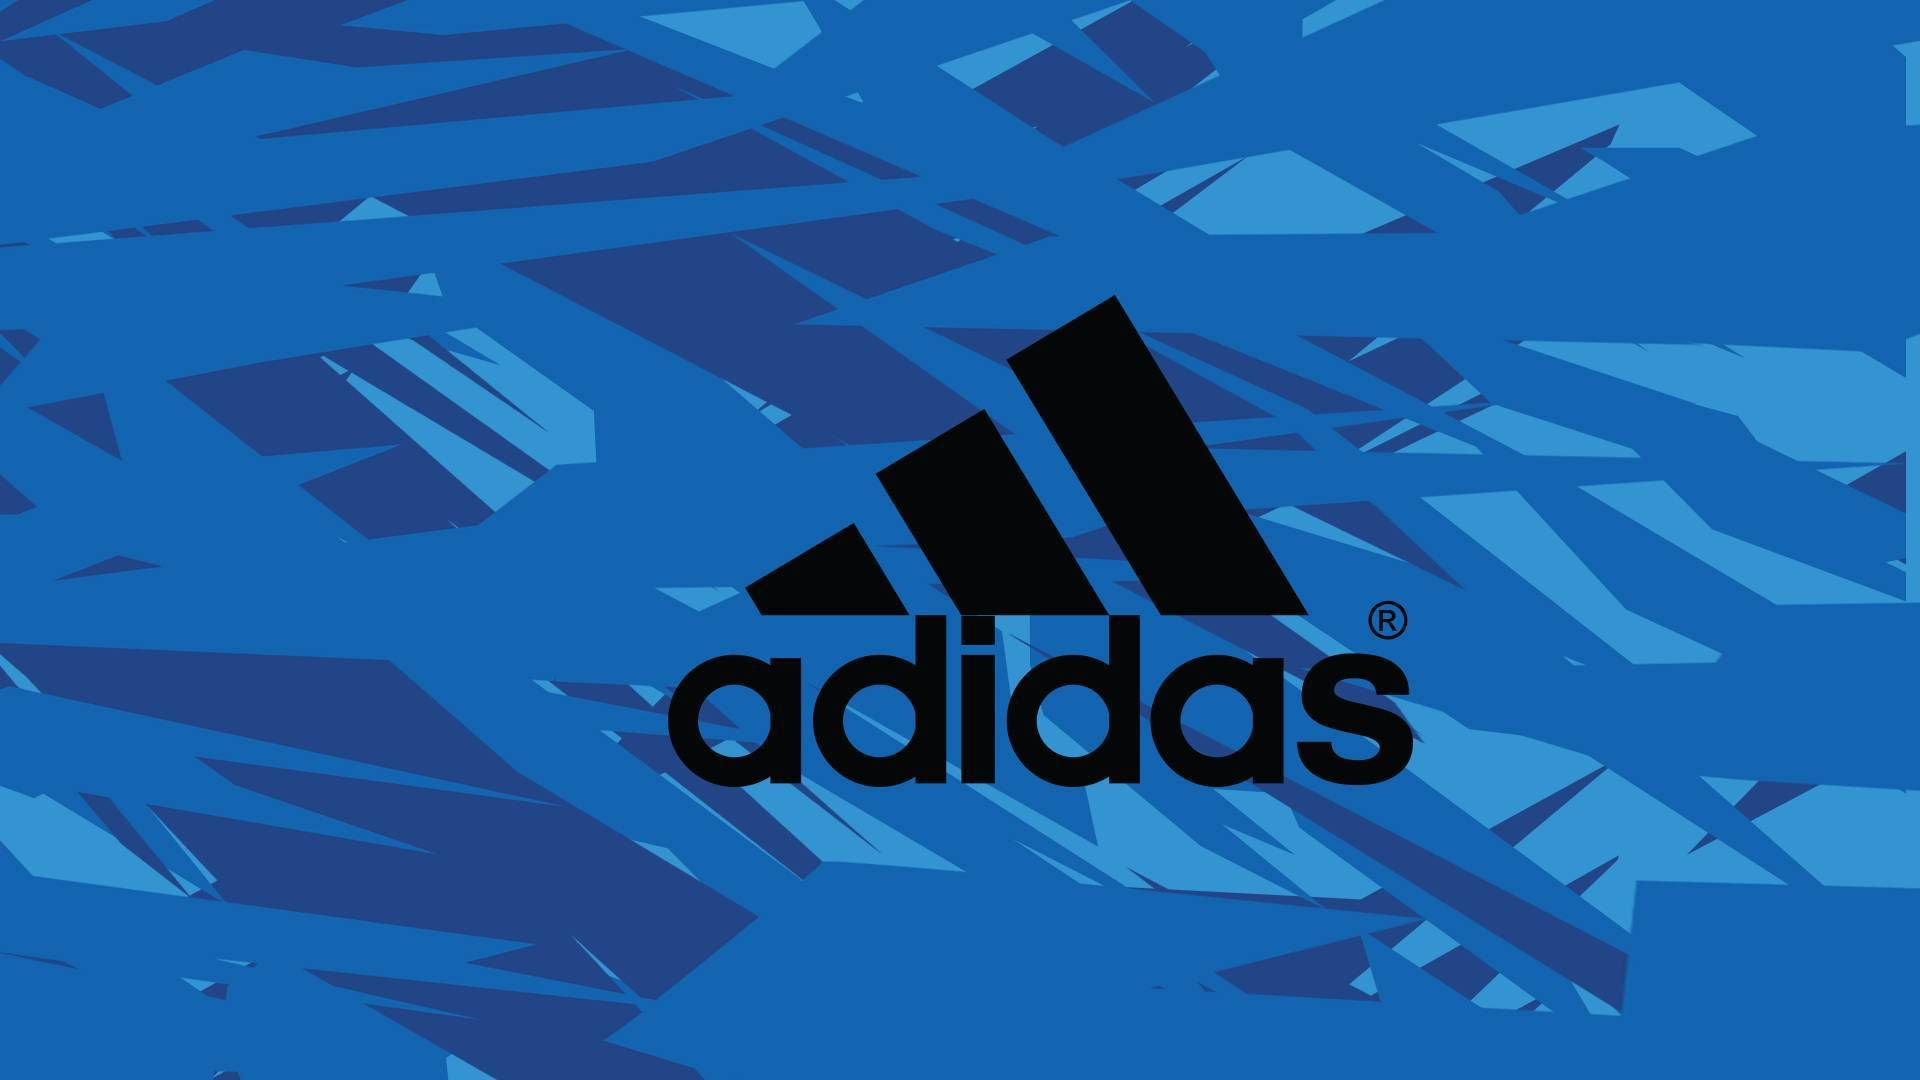 Collection of Adidas Wallpaper Logo on HDWallpapers 19201080